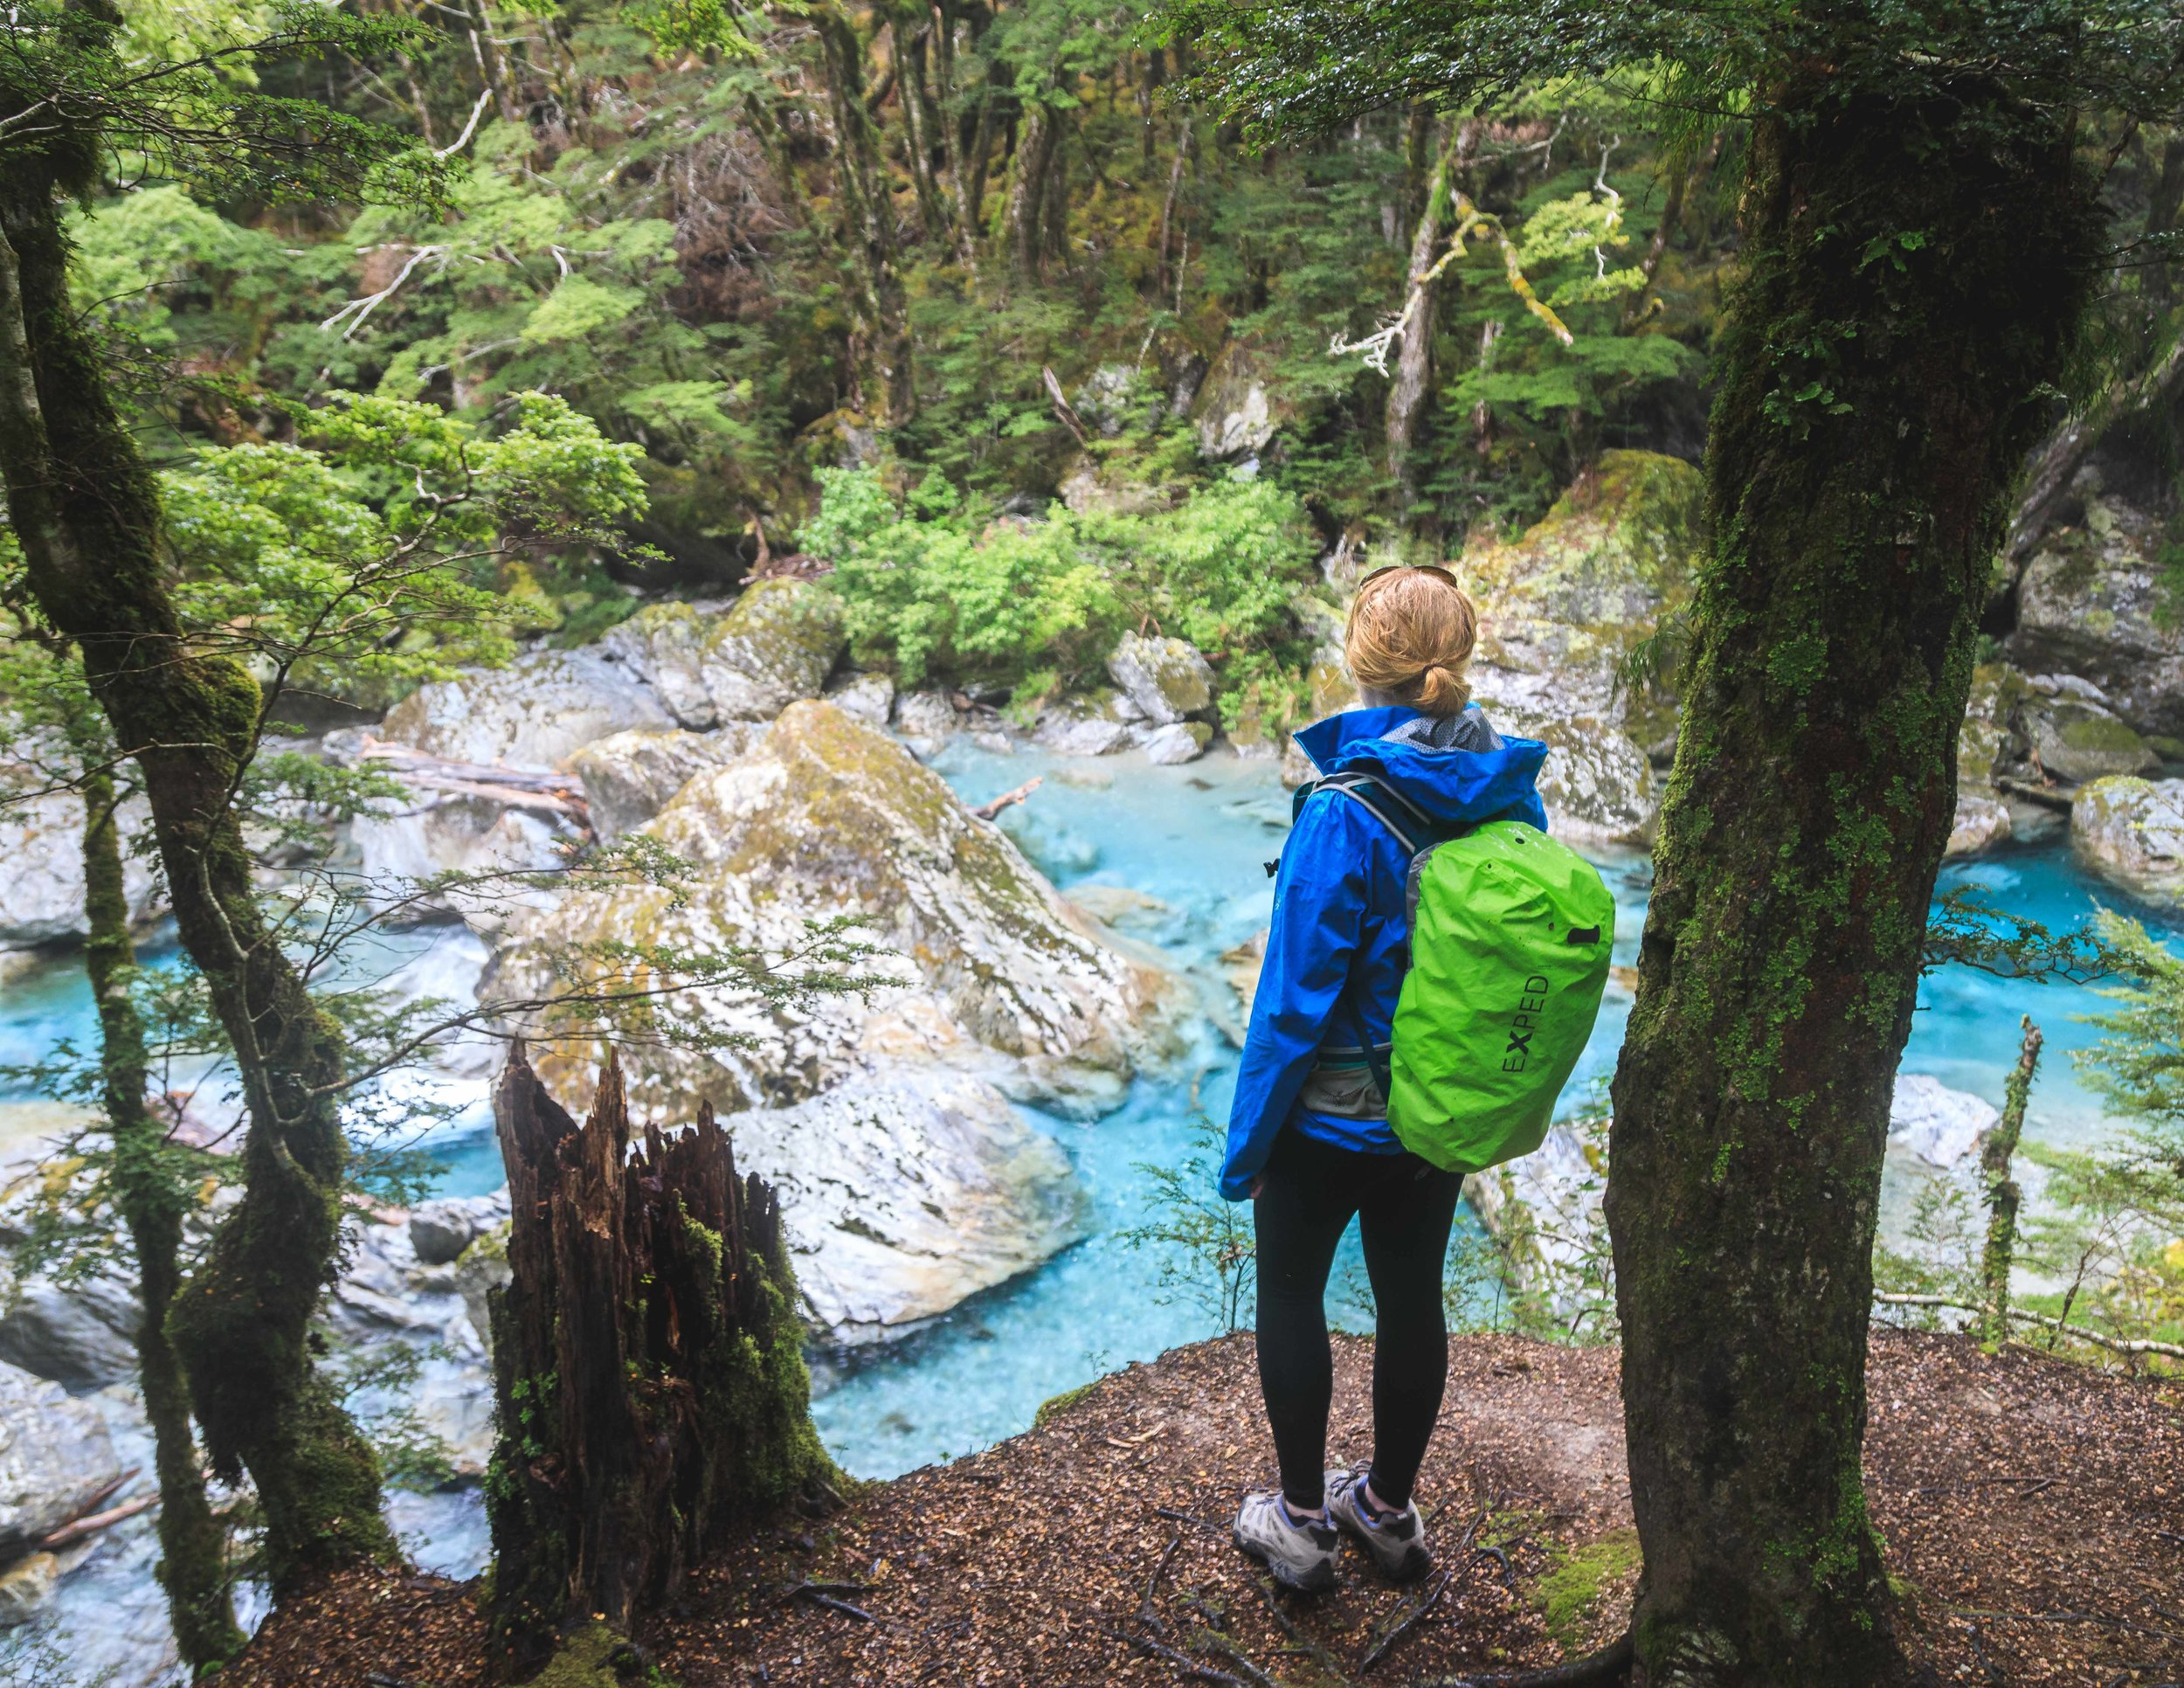 The Routeburn Track: The Route Burn River